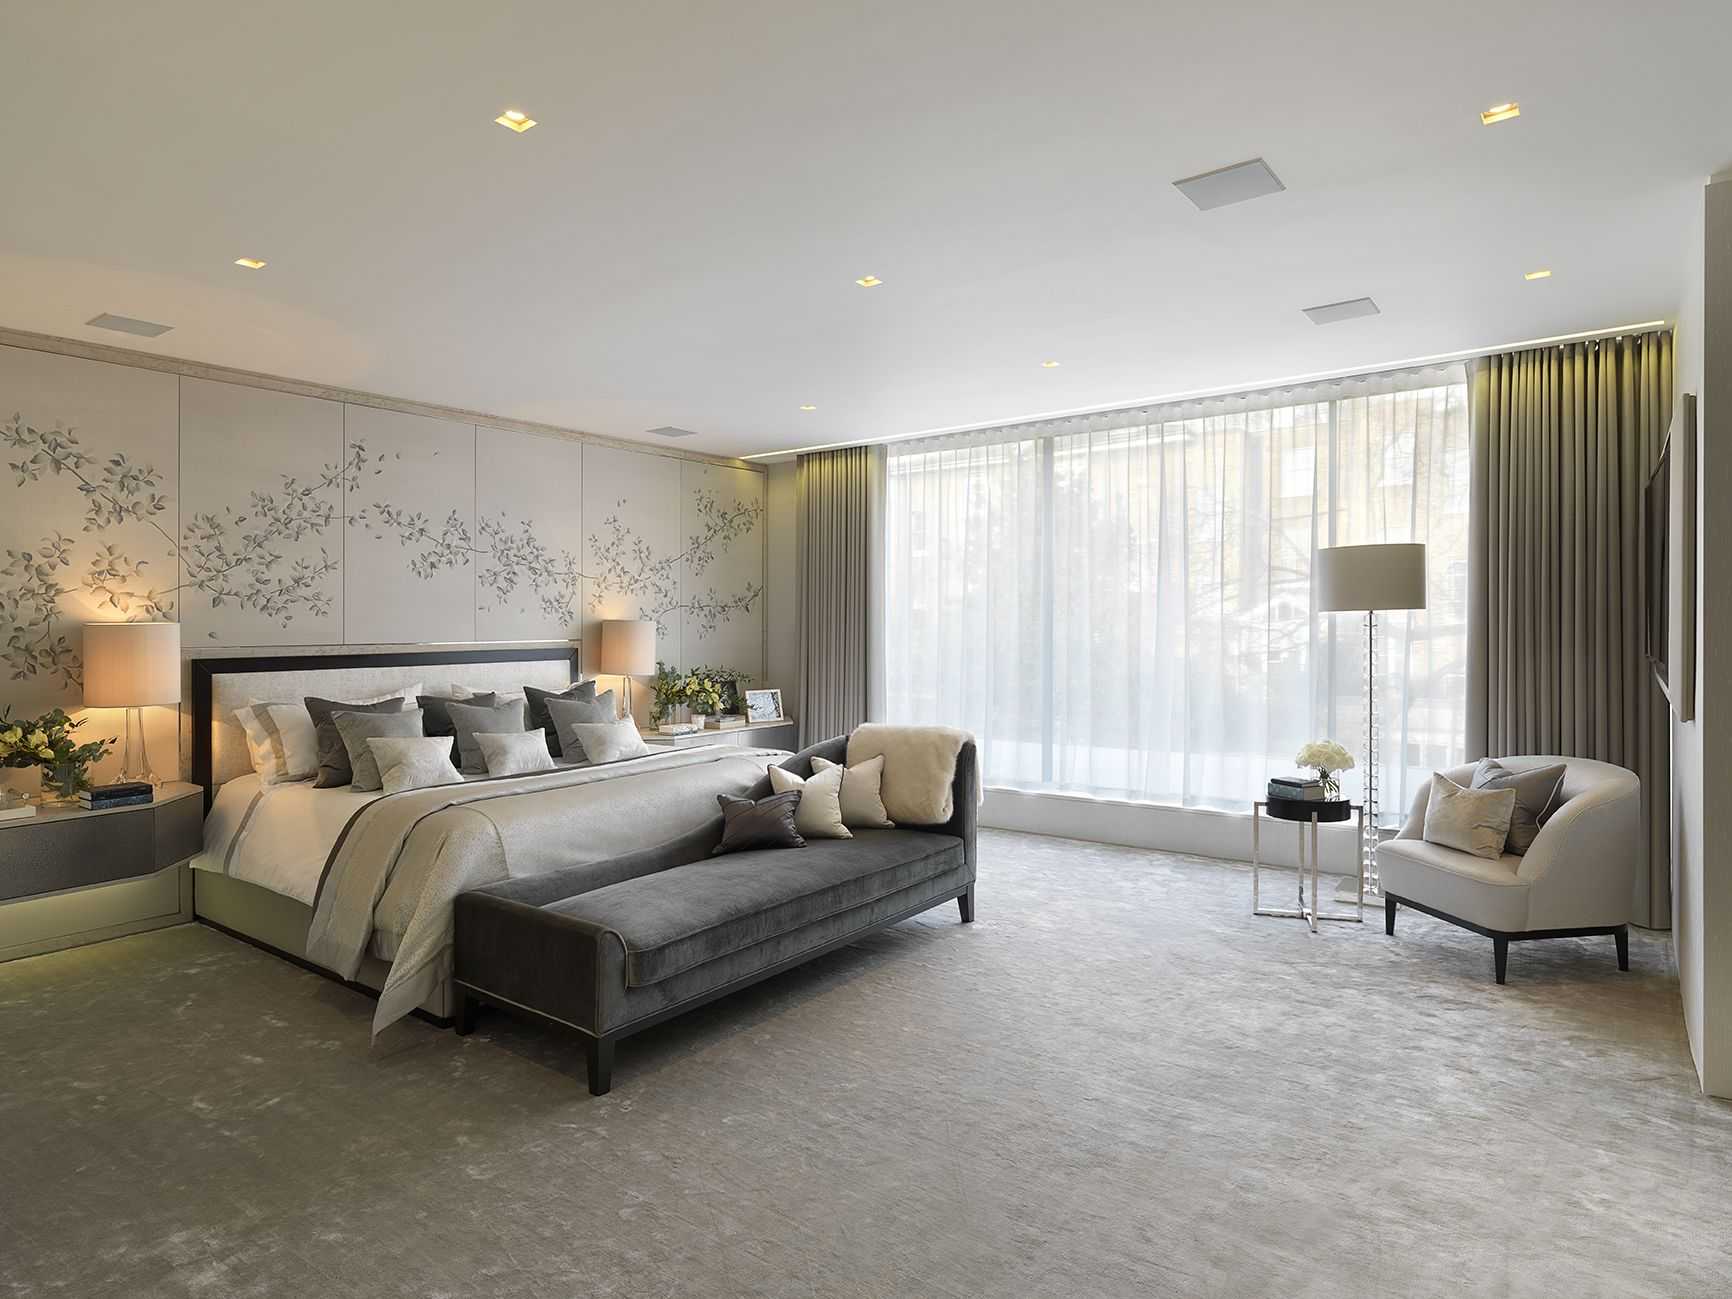 blog furniture buying sale queen suite modern decoration group bedroom house sahara for suites guide to